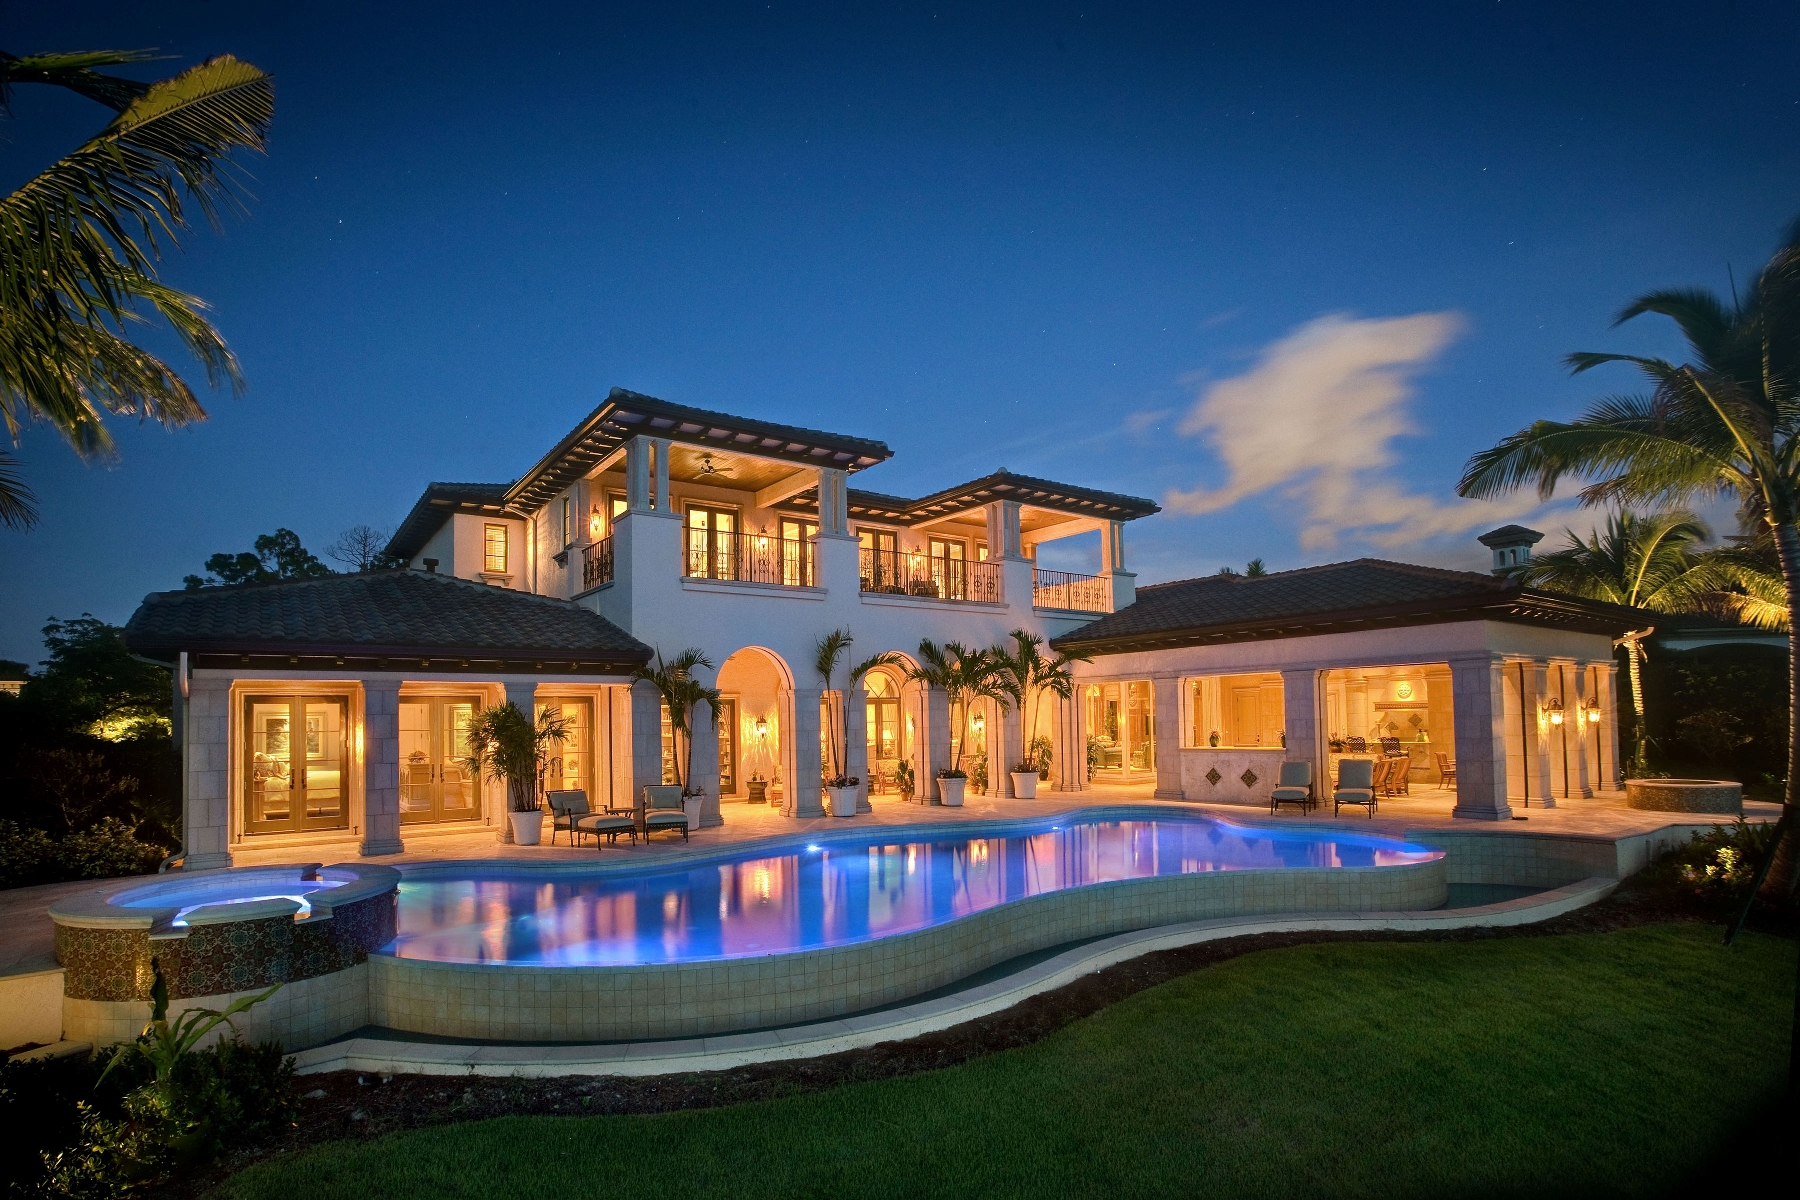 Wall street journal tees up most popular homes naples for Most luxurious house